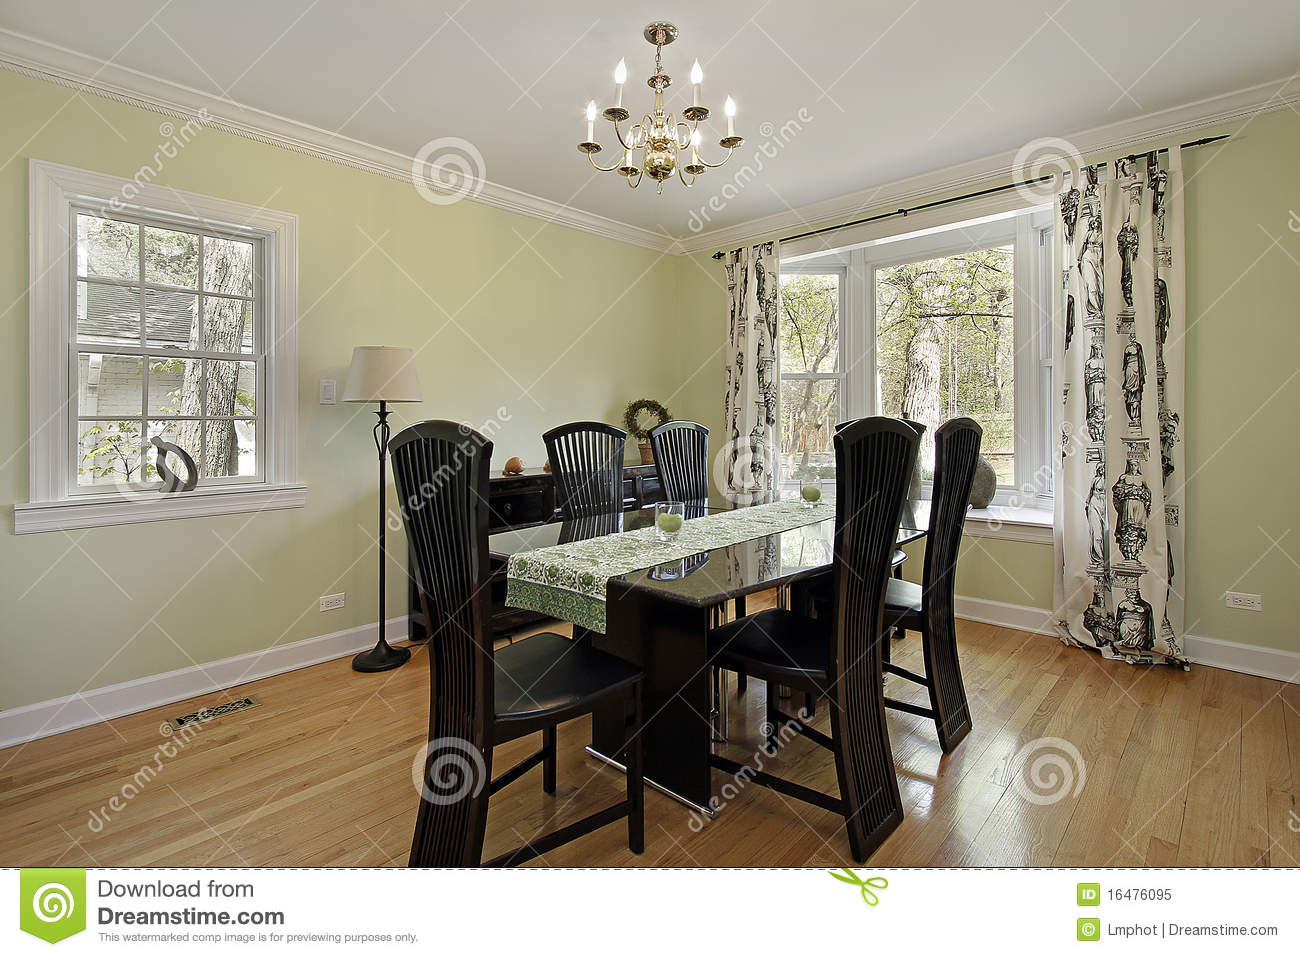 Dining room with light green walls royalty free stock photo image 16476095 - Pale green dining room ...